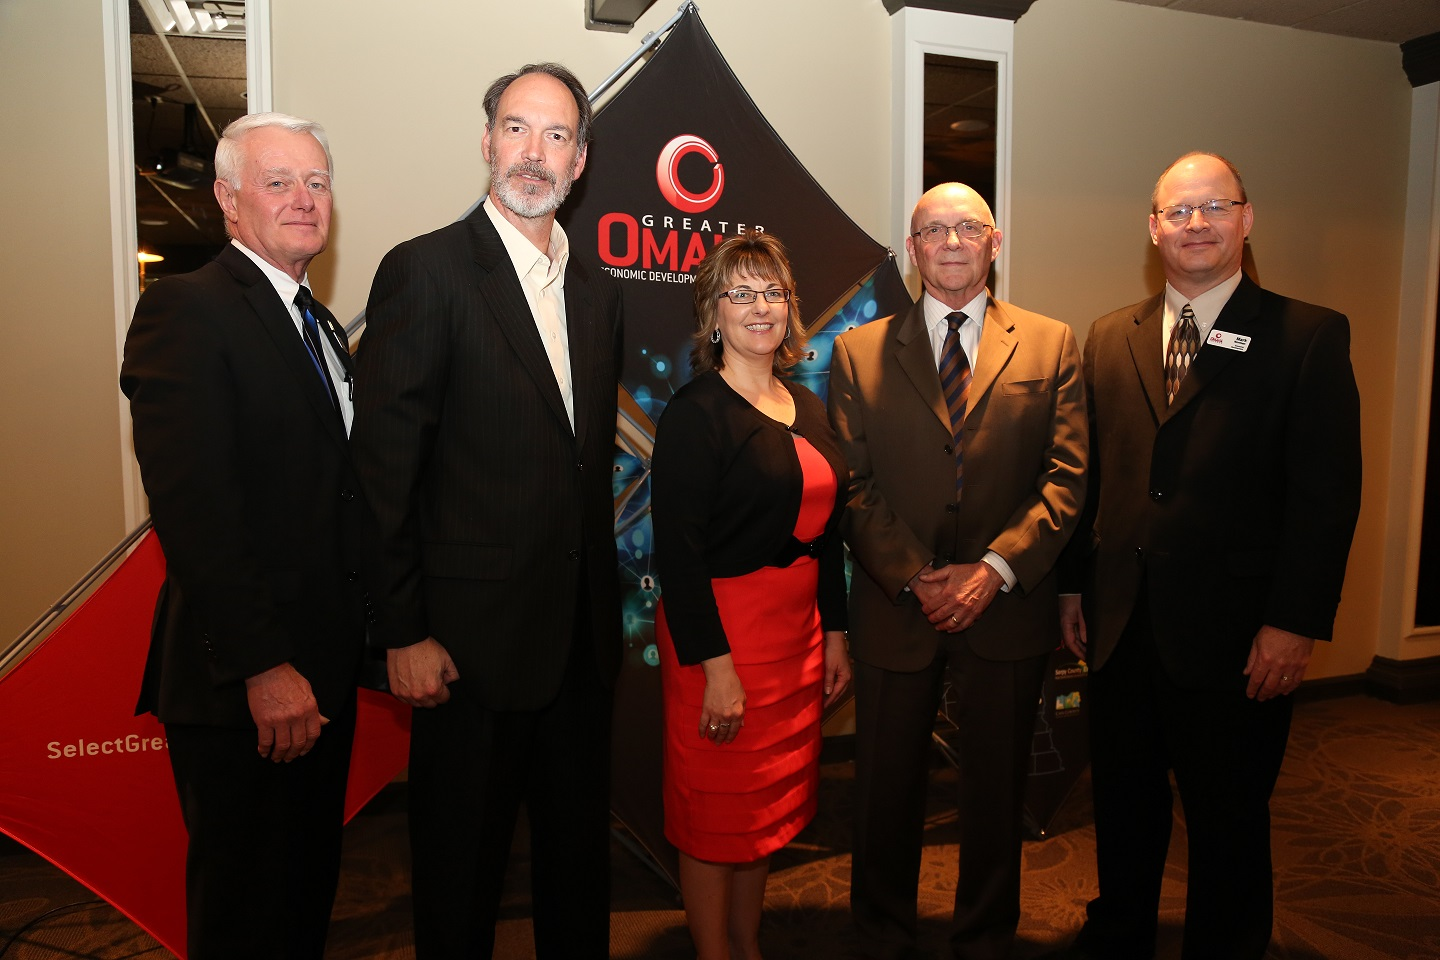 Economic Development Staff - Rod Moseman, Toby Churchill, Barb Pierce, Doug Heim, Mark Norman